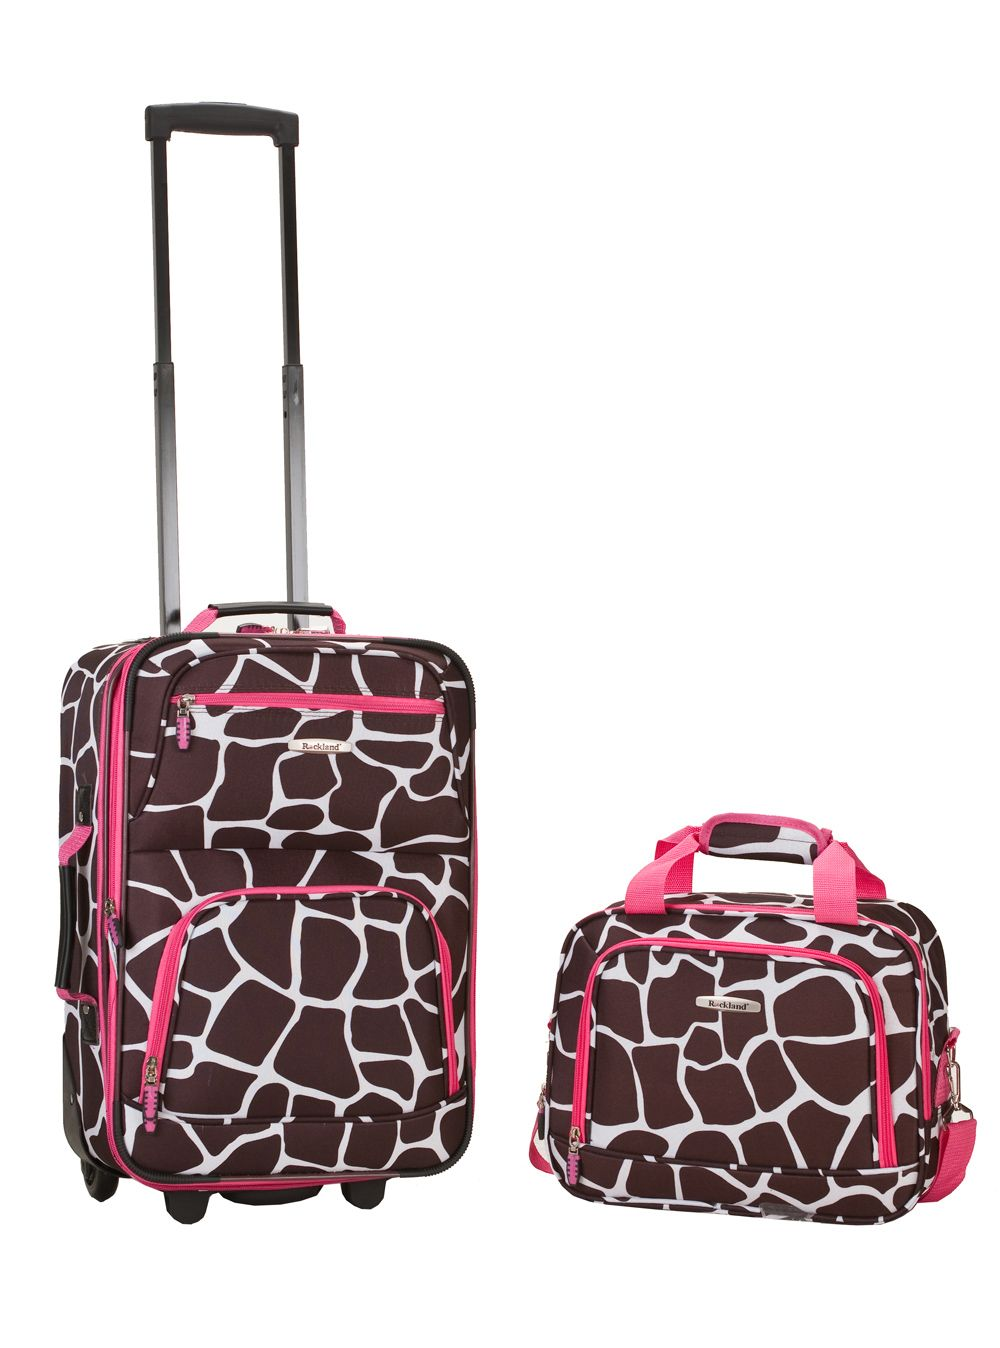 Rockland Fox Luggage 2 Piece Set Pink Giraffe Multi